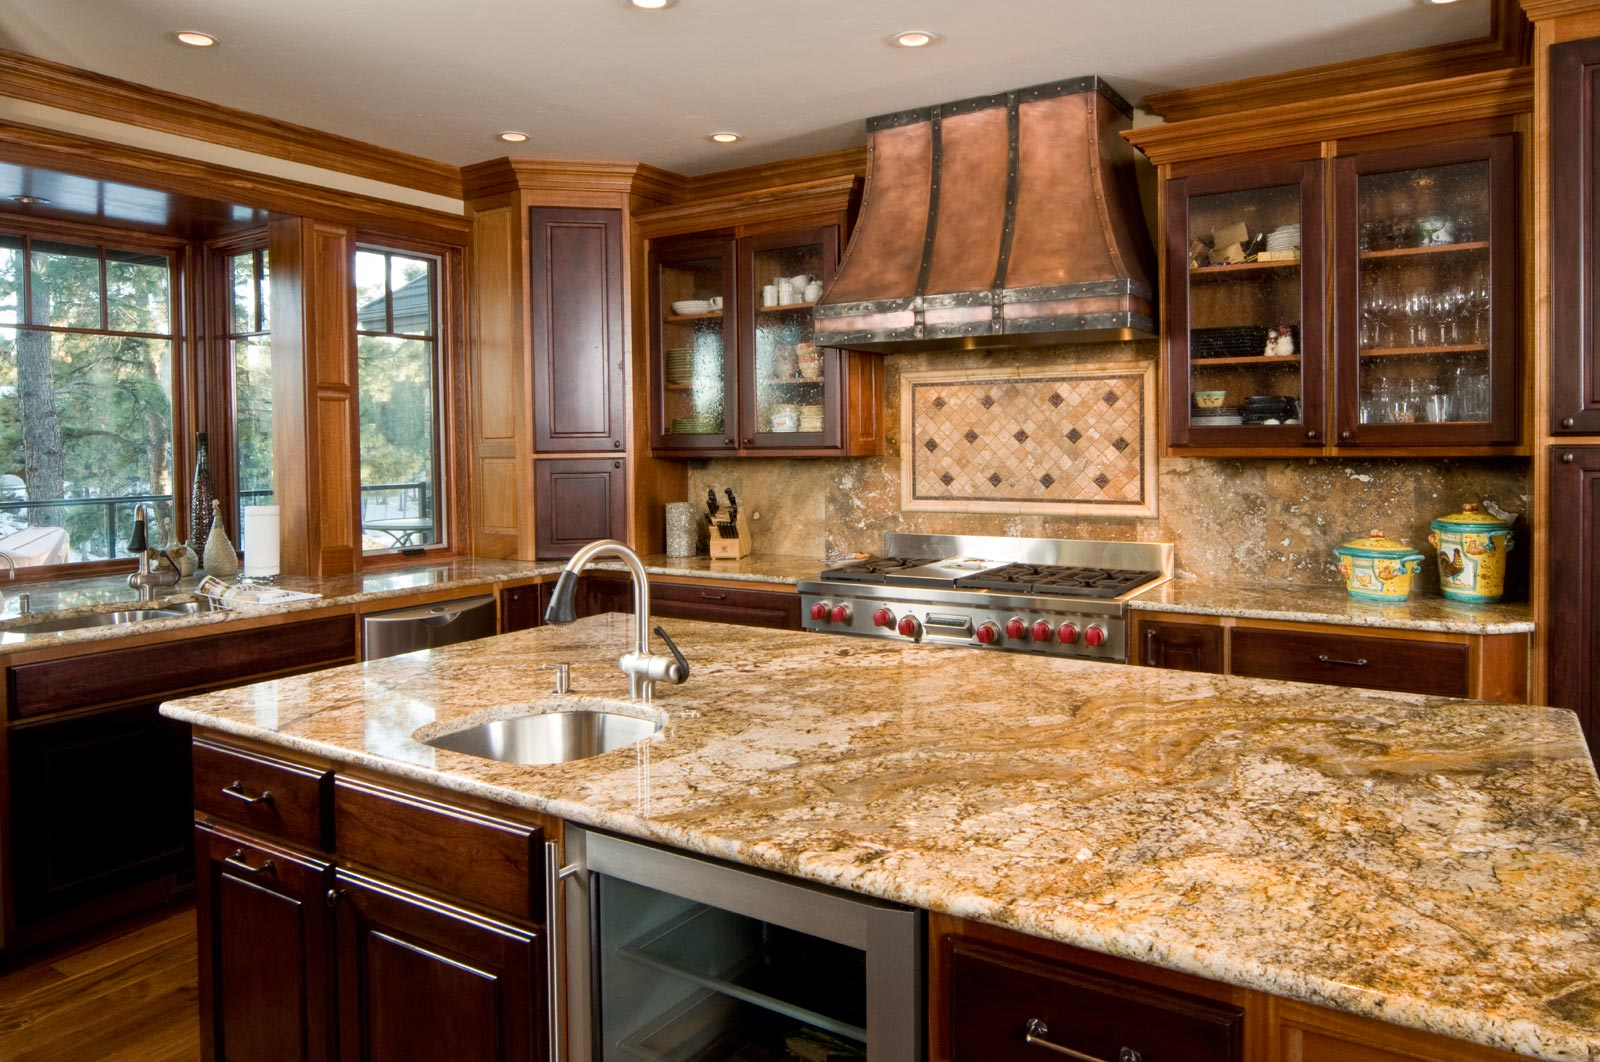 granite kitchen countertops marvelous traditional kitchen design decorated with cream granite kitchen  countertops and wooden KWFHSAG